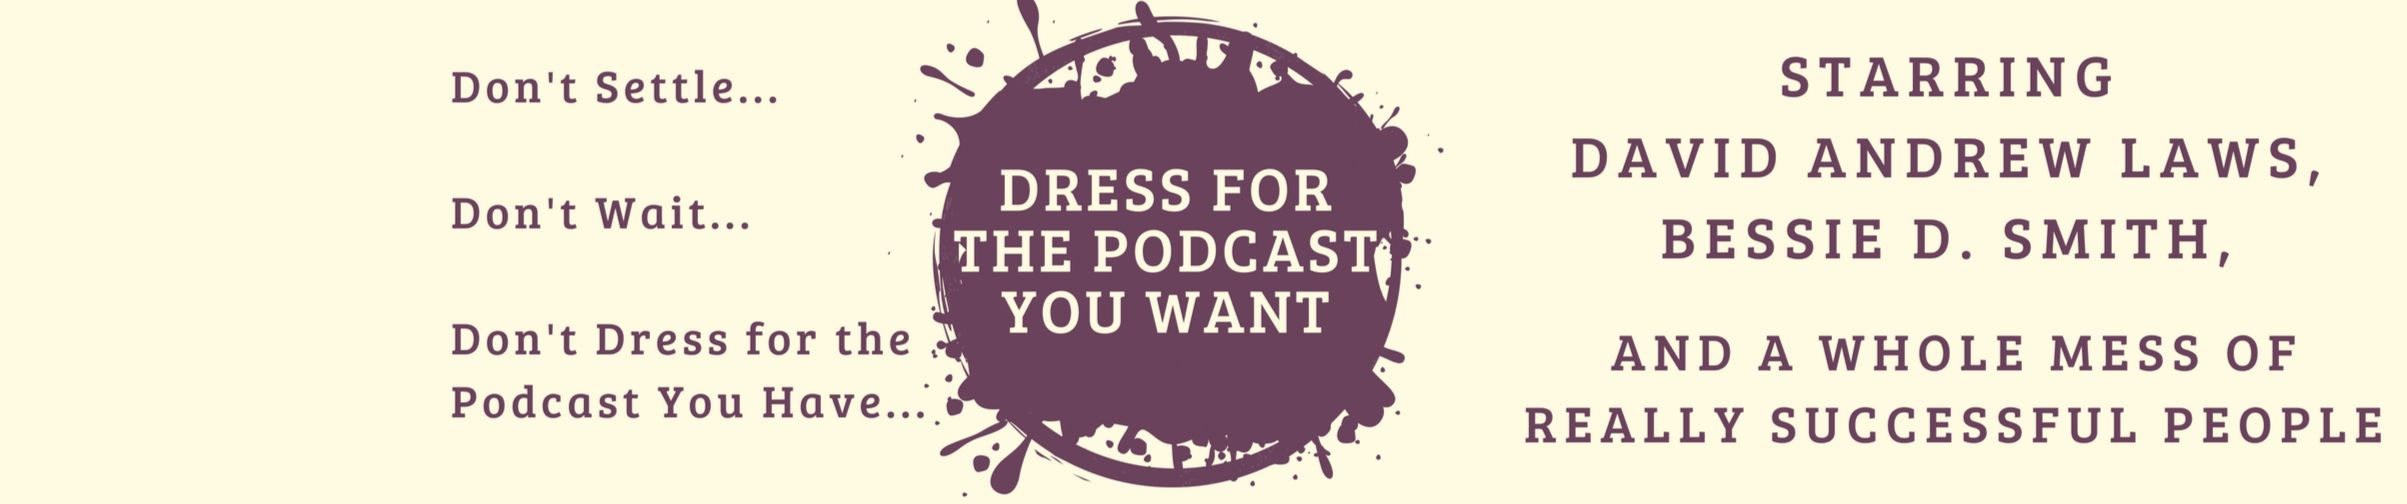 Dress for the Podcast You Want